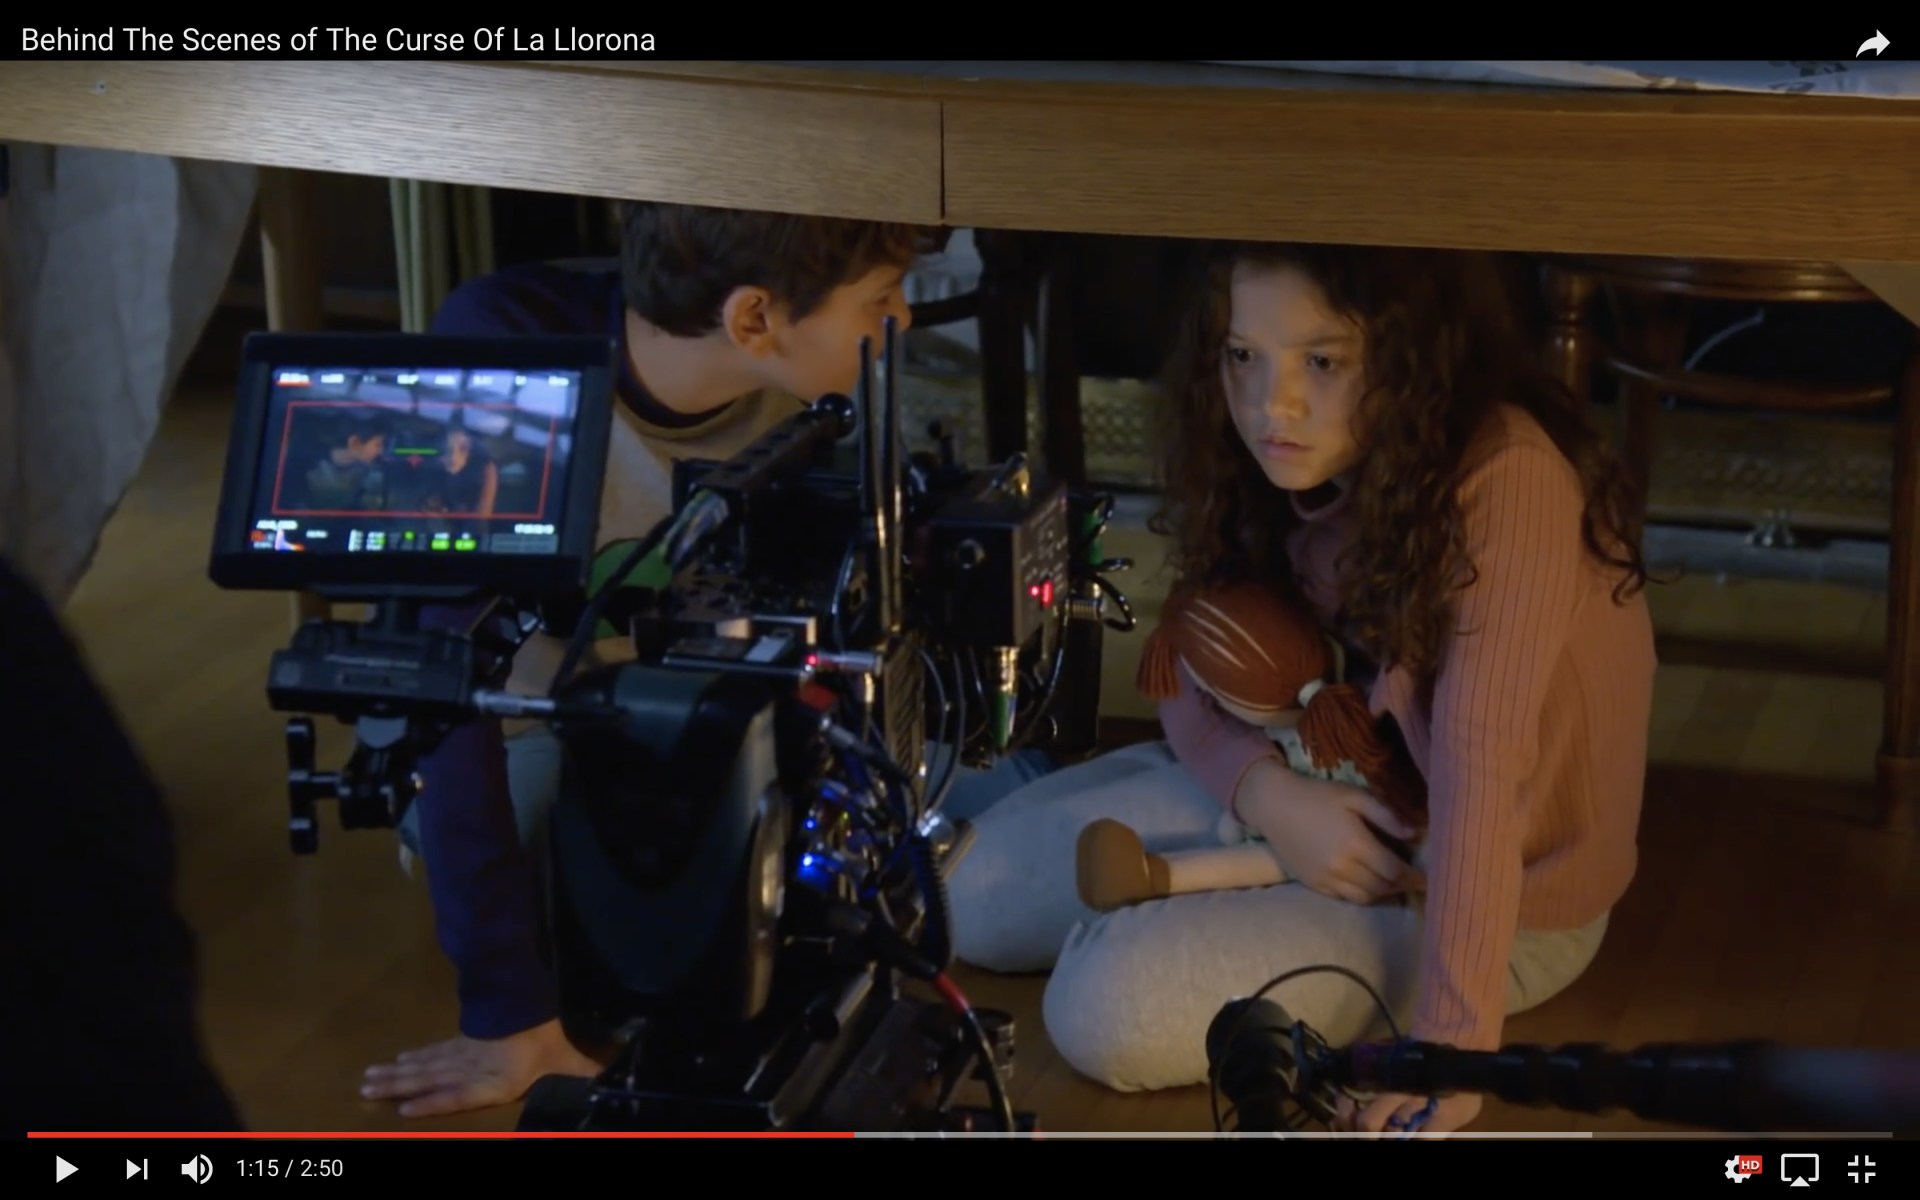 The Curse of La Llorona Behind the Scenes